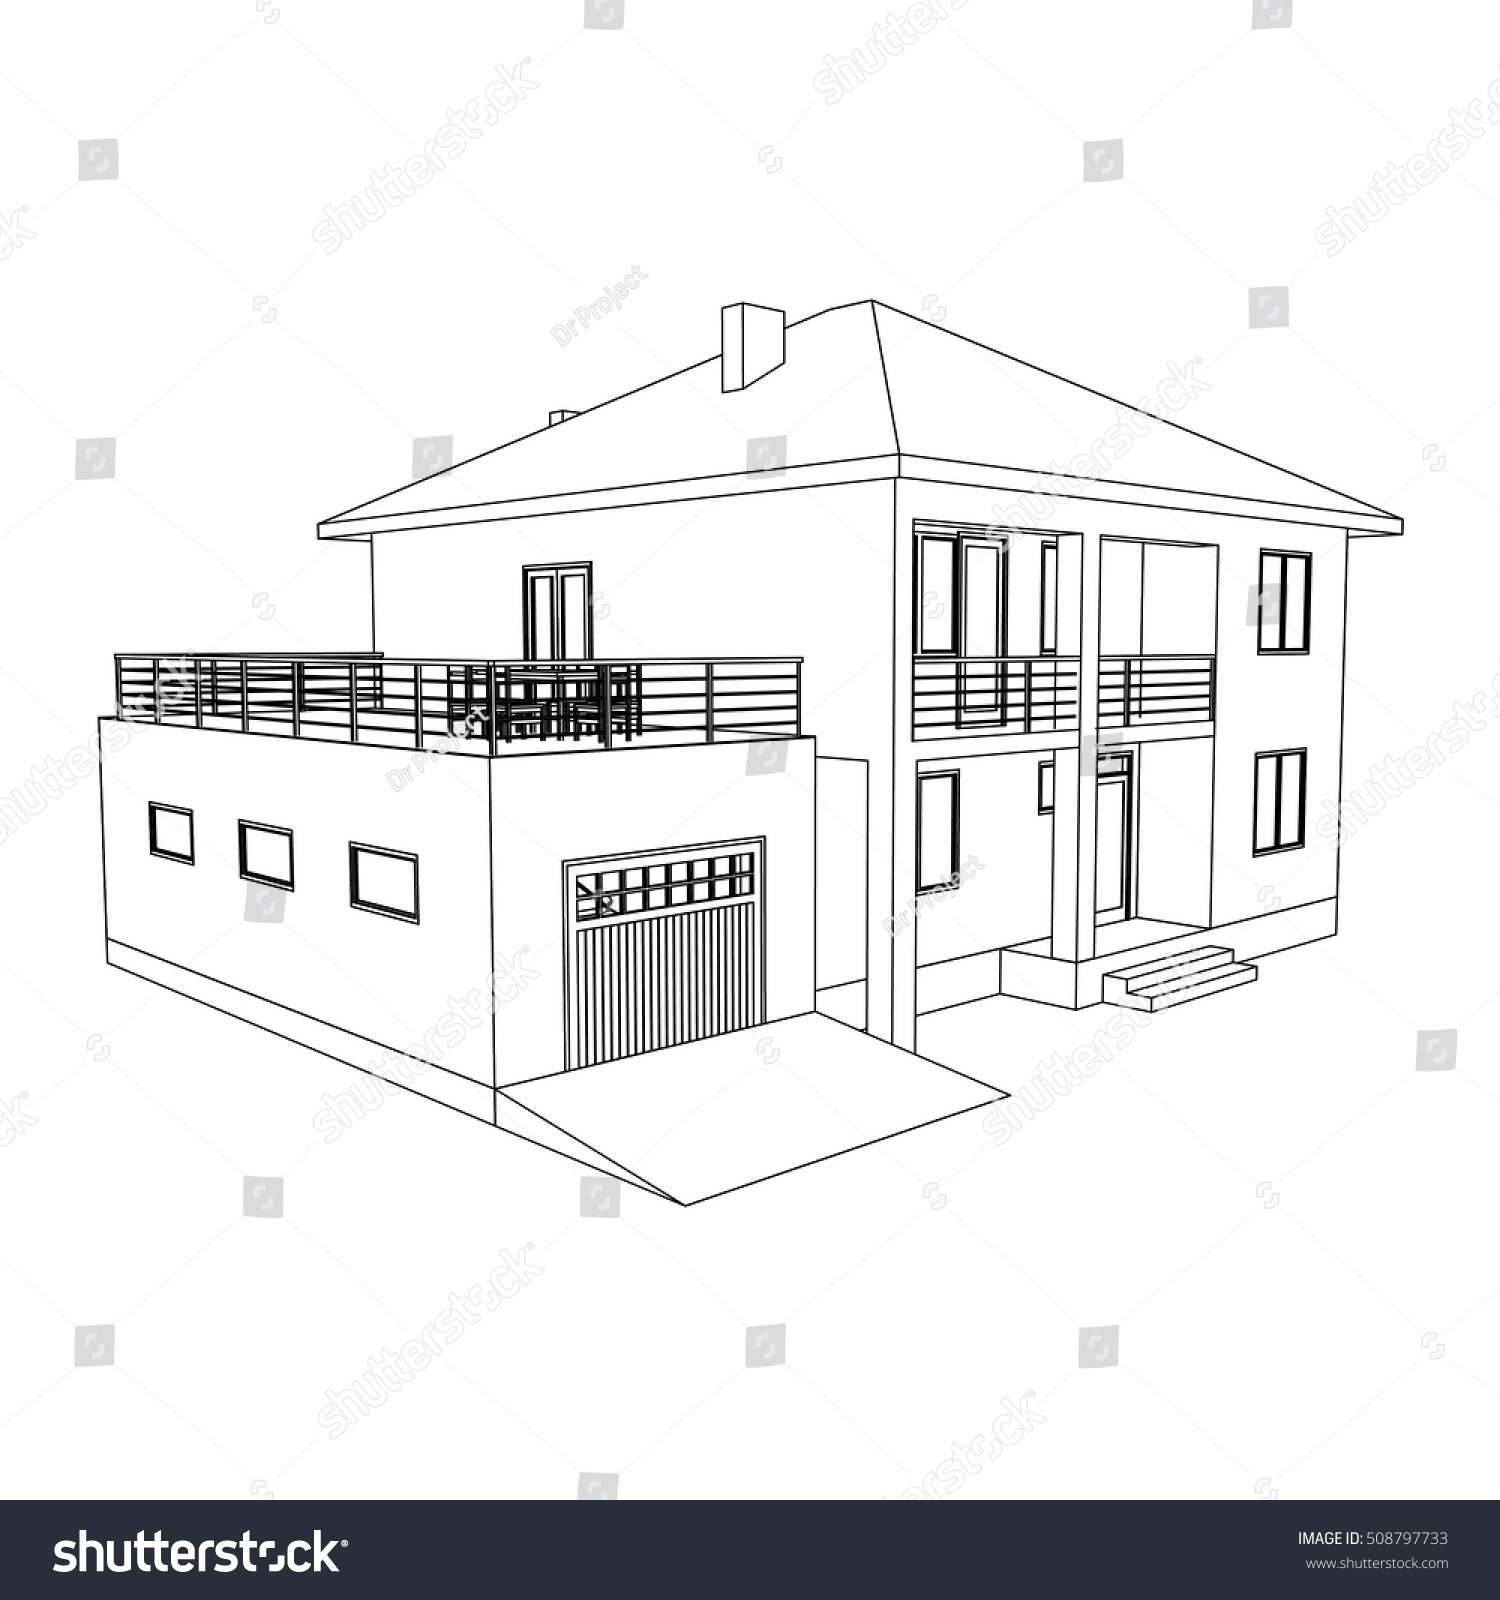 Drawing of the suburban house outlines cottage on white background